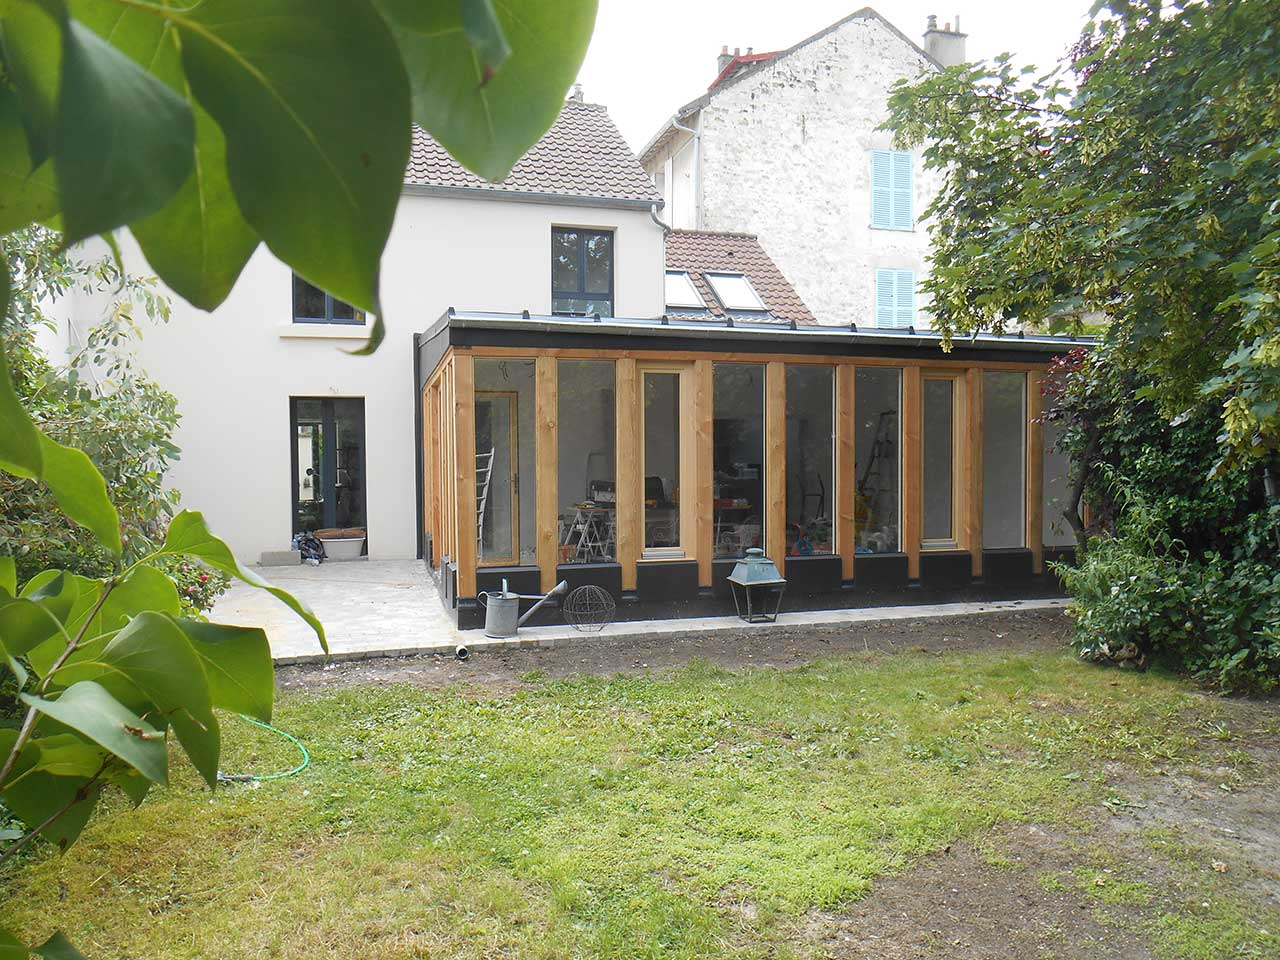 Extension maison en bois et zinc dans un jardin cabanologue for Extension de maison